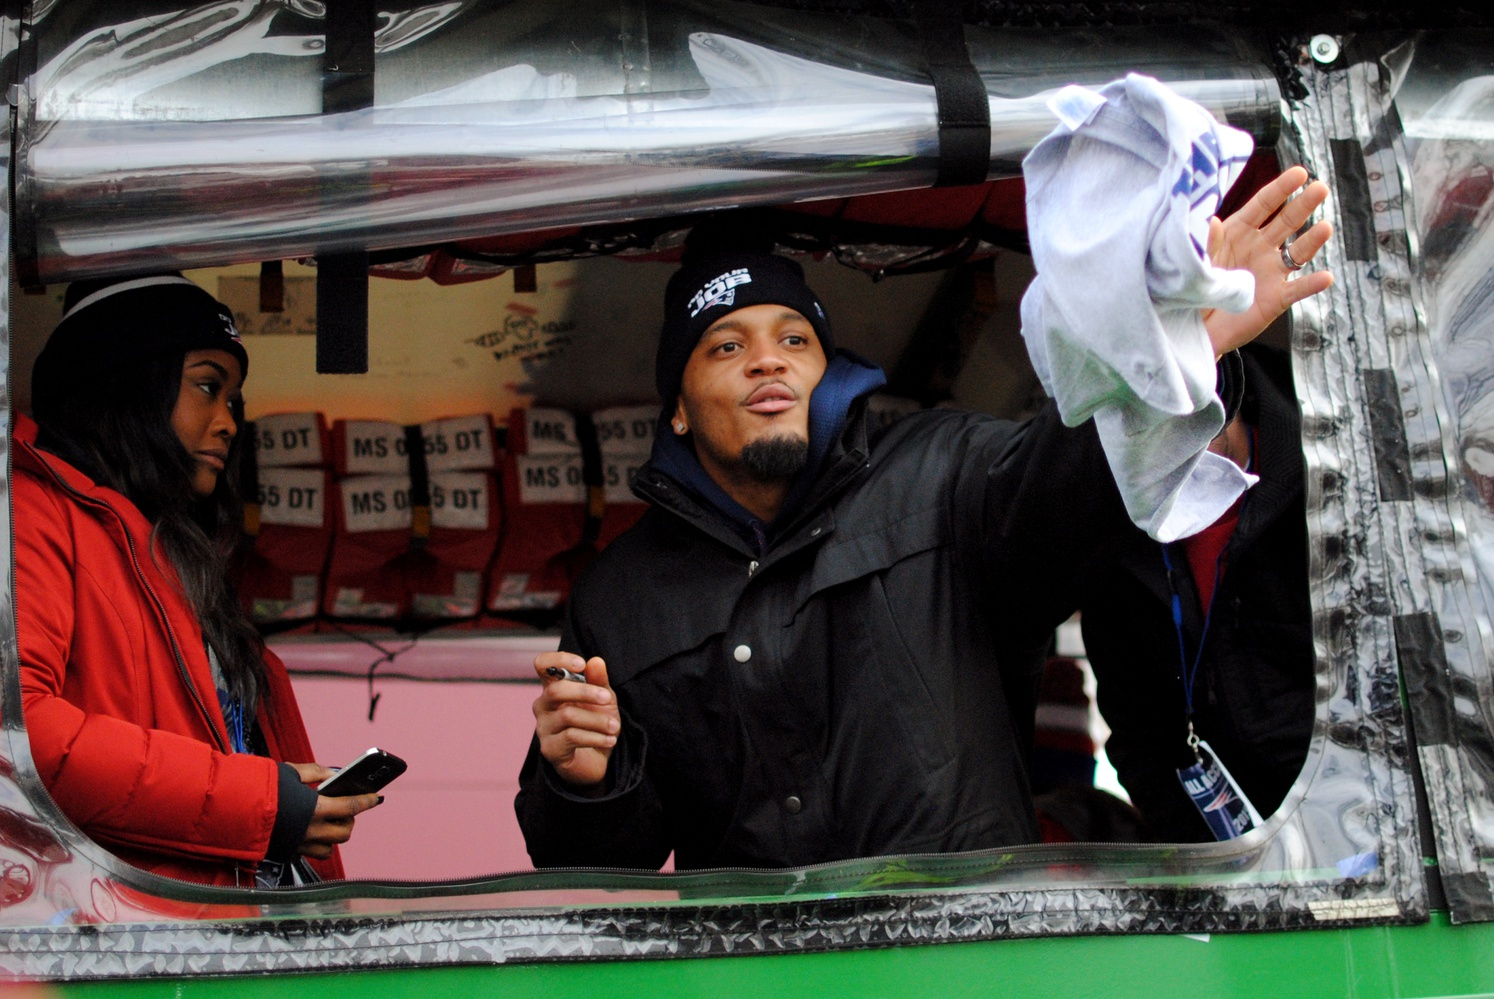 Patrick C. Chung, a strong safety for the Patriots, throws an autographed shirt back to a  fan during the Super Bowl parade in Boston on Wednesday.